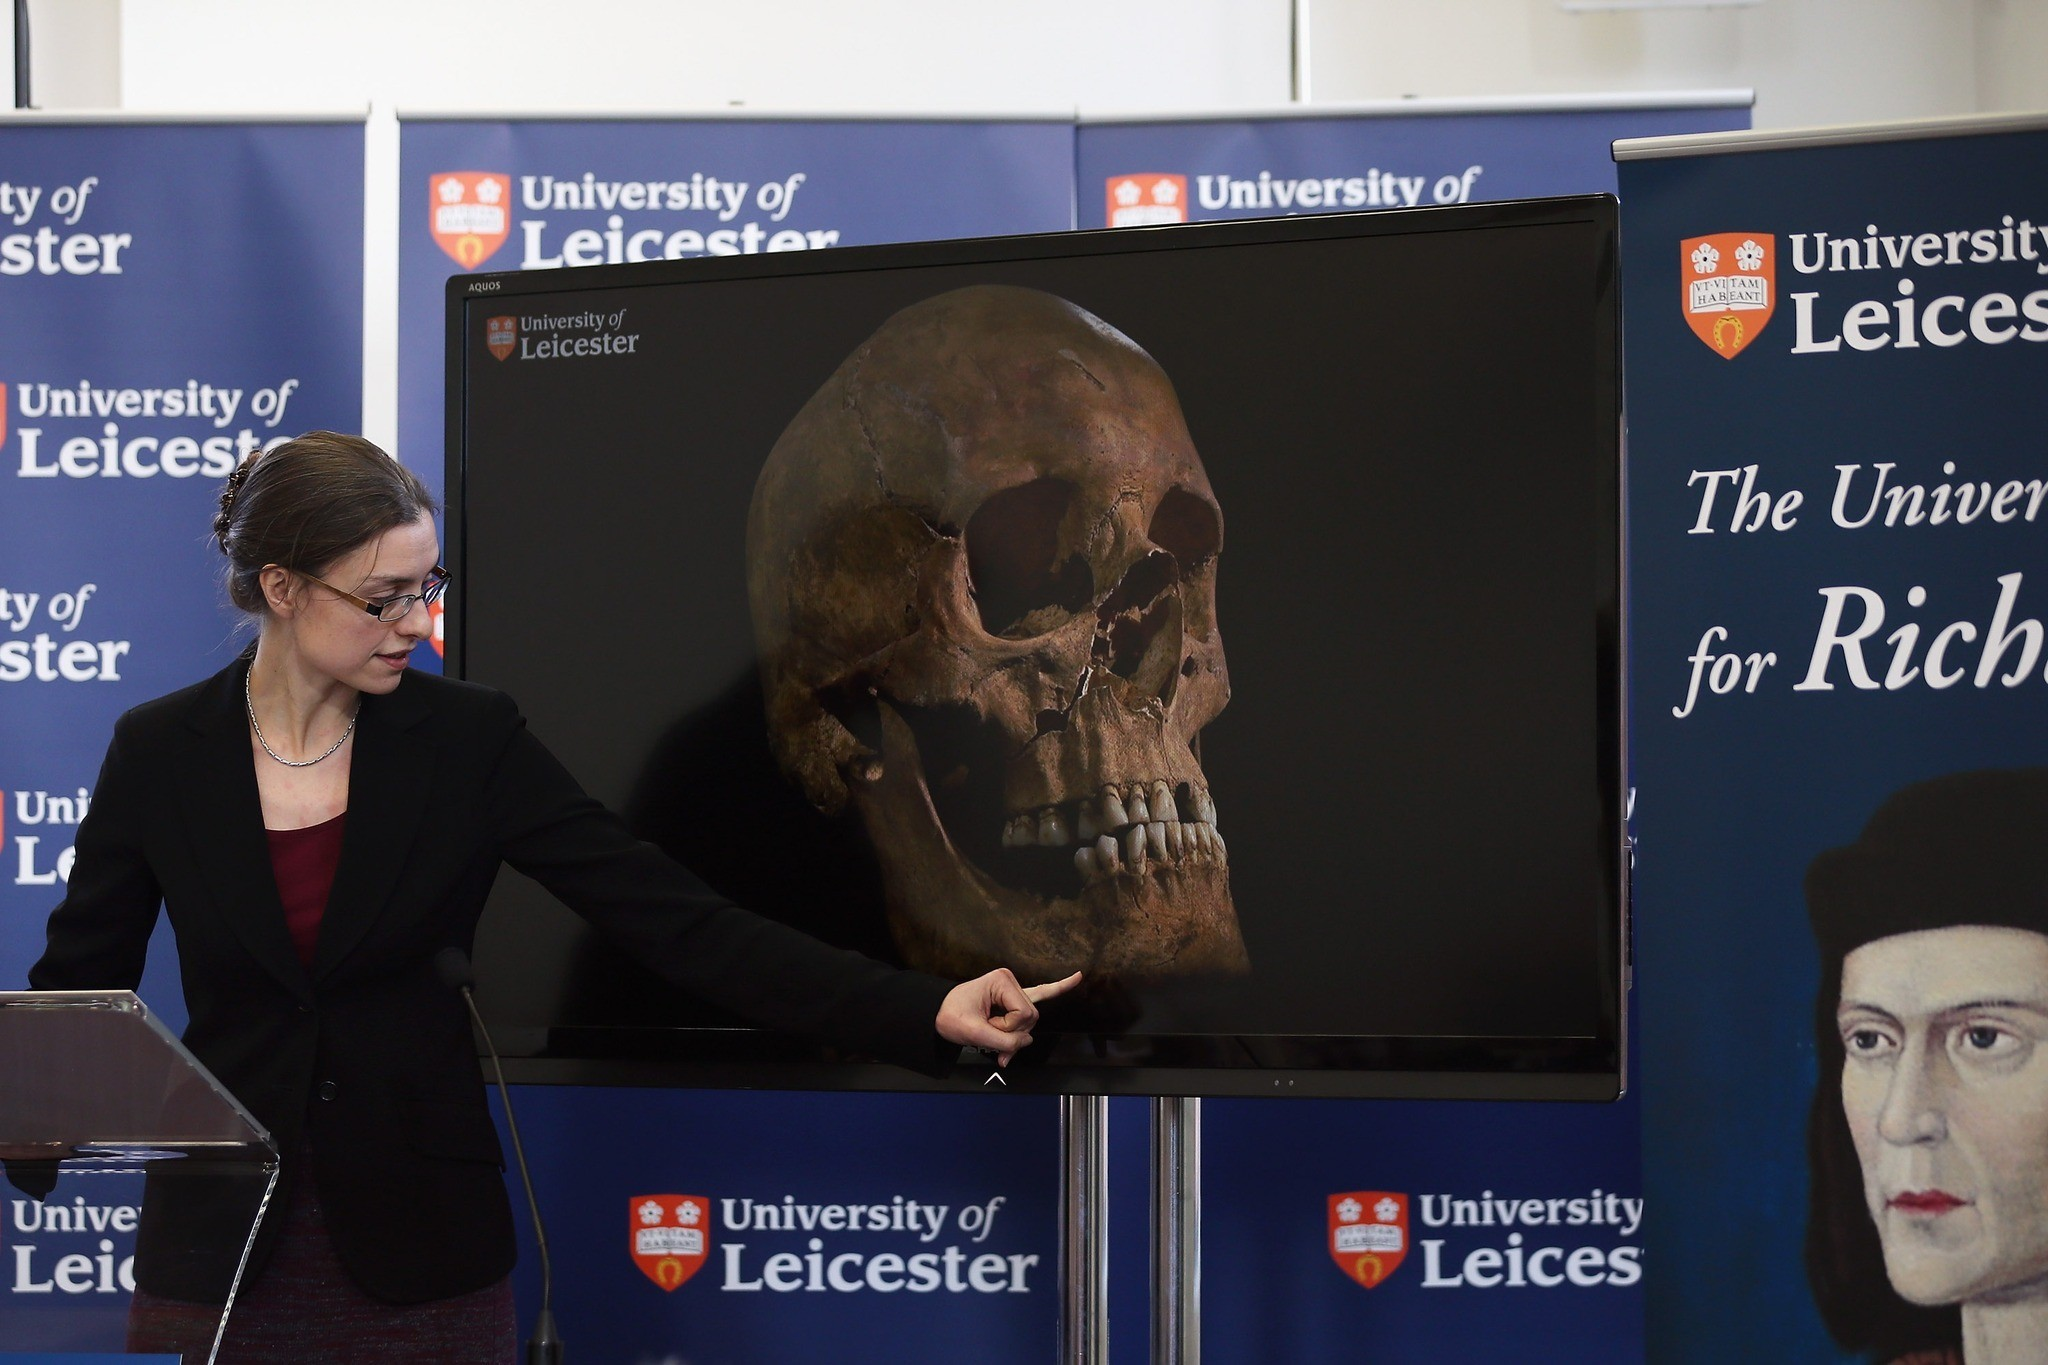 Remains of King Richard III - University of Leicester